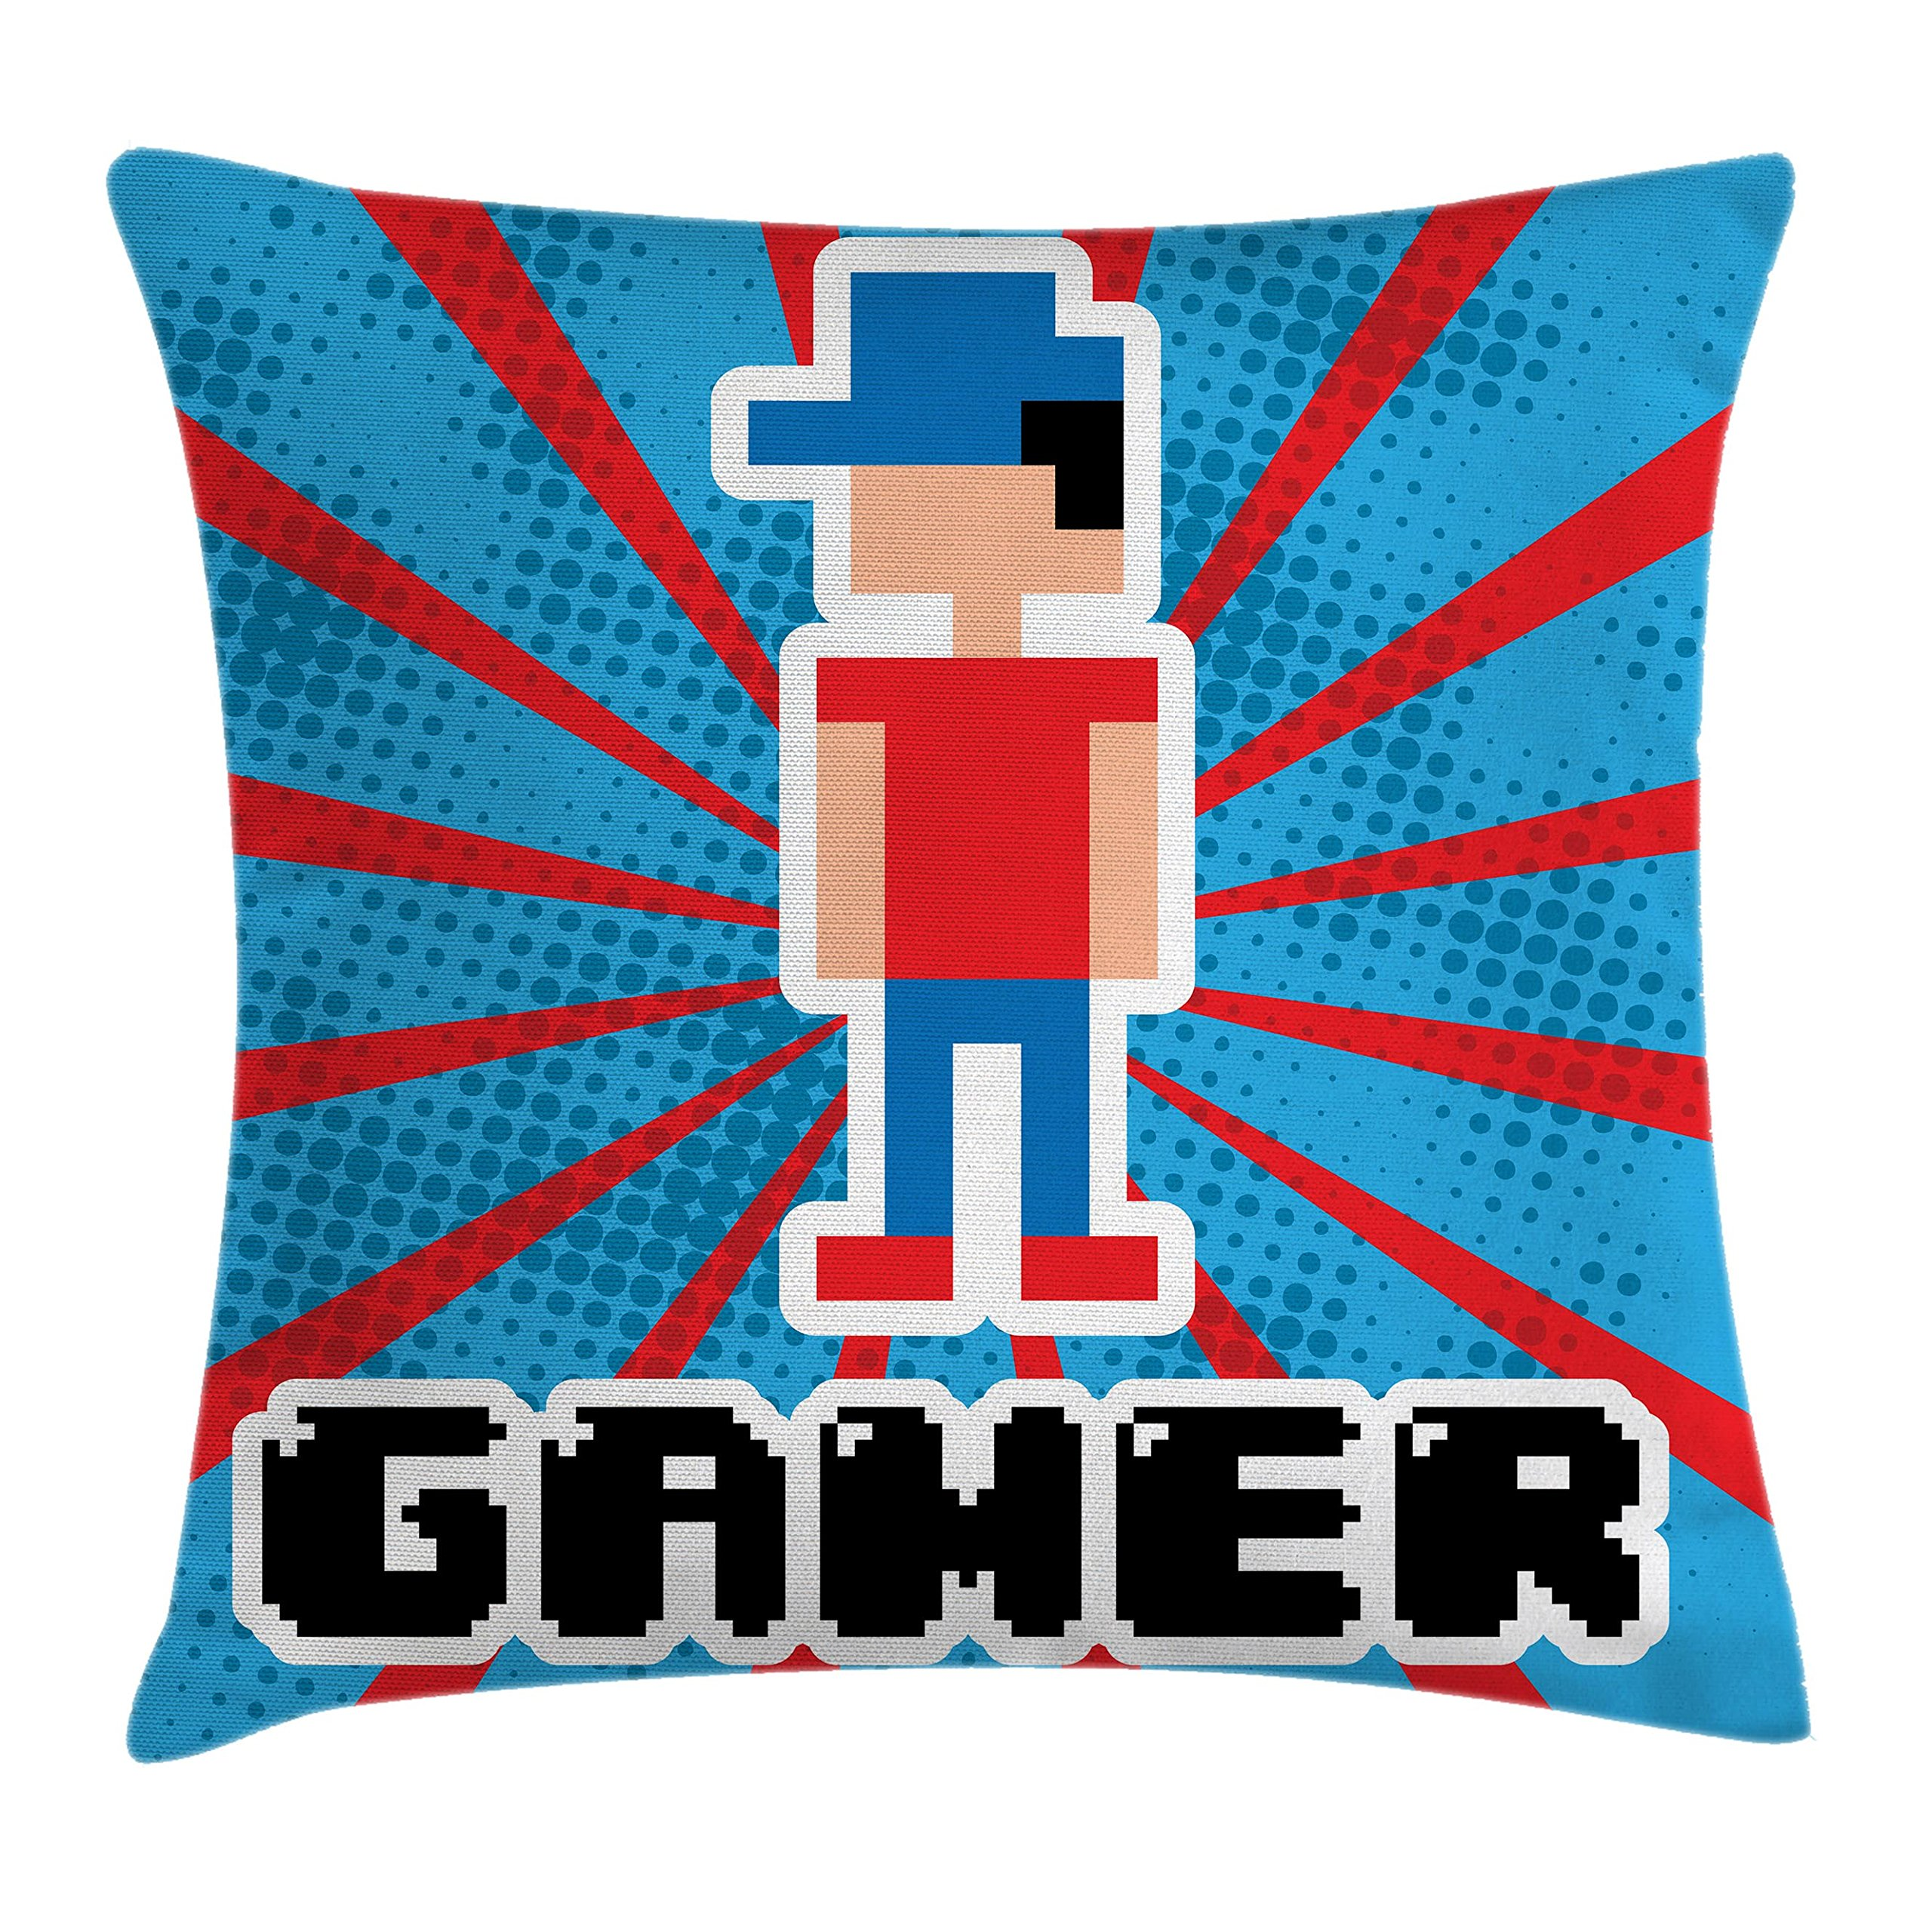 Ambesonne Video Games Throw Pillow Cushion Cover, Blue and Red Striped Boom Beams Retro 90's Toys Boy with Cap, Decorative Square Accent Pillow Case, 18 X 18 Inches, Vermilion Blue White Black